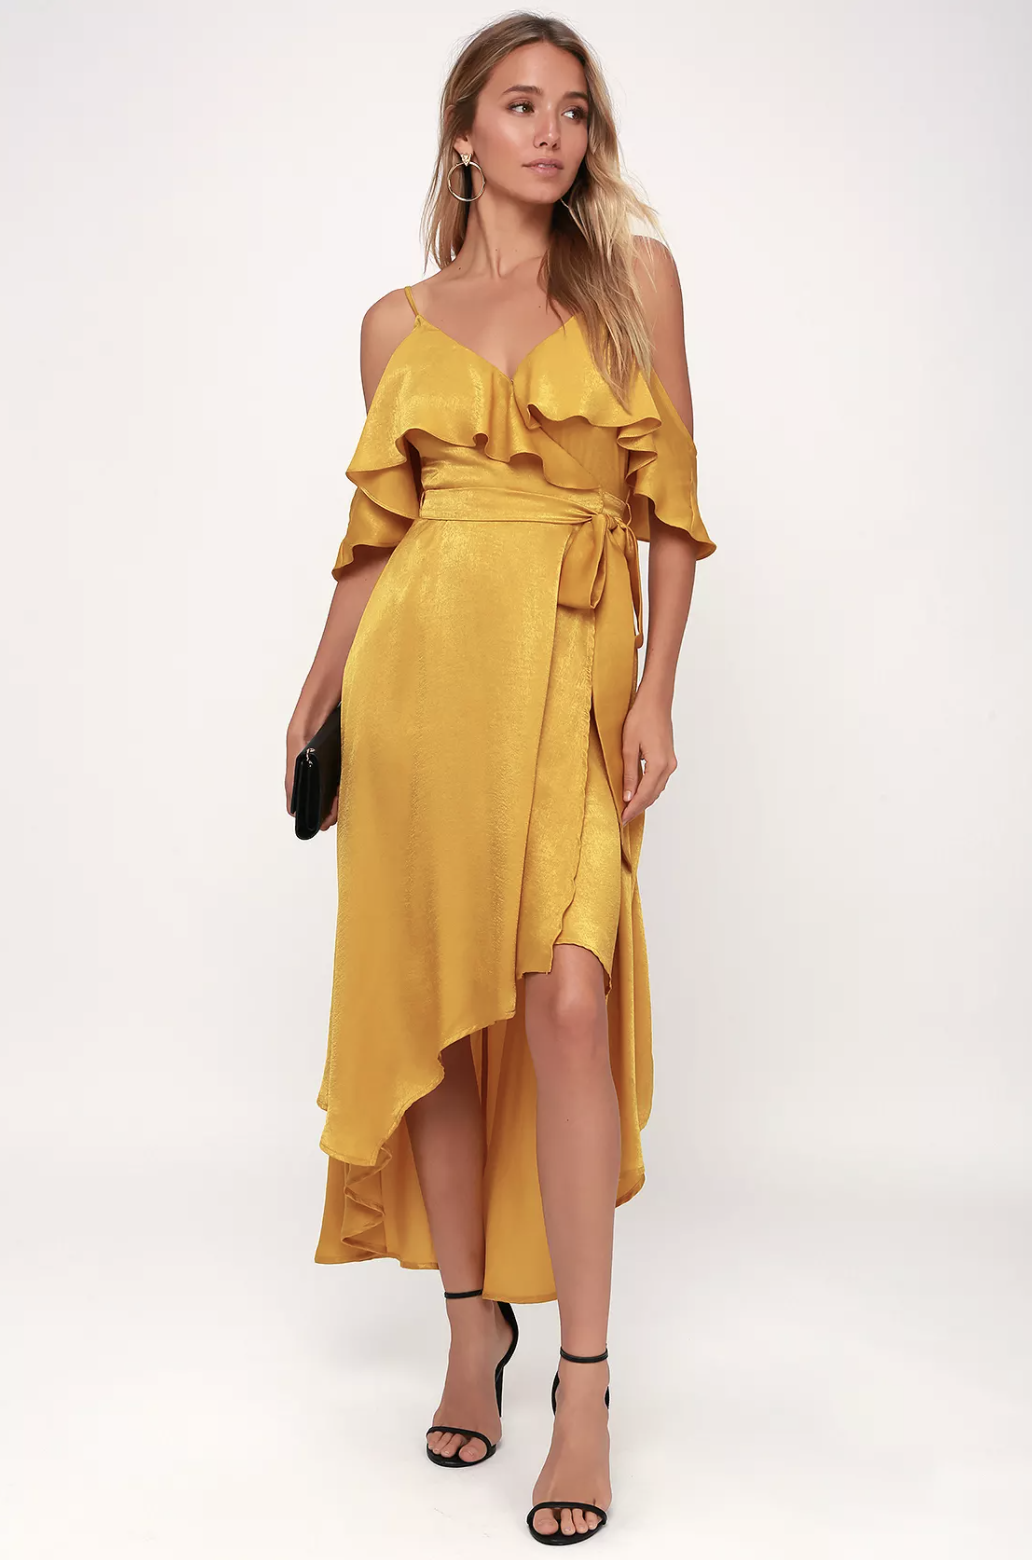 Lulus Layla Mustard Yellow Satin Off-the-Shoulder Wrap Dress